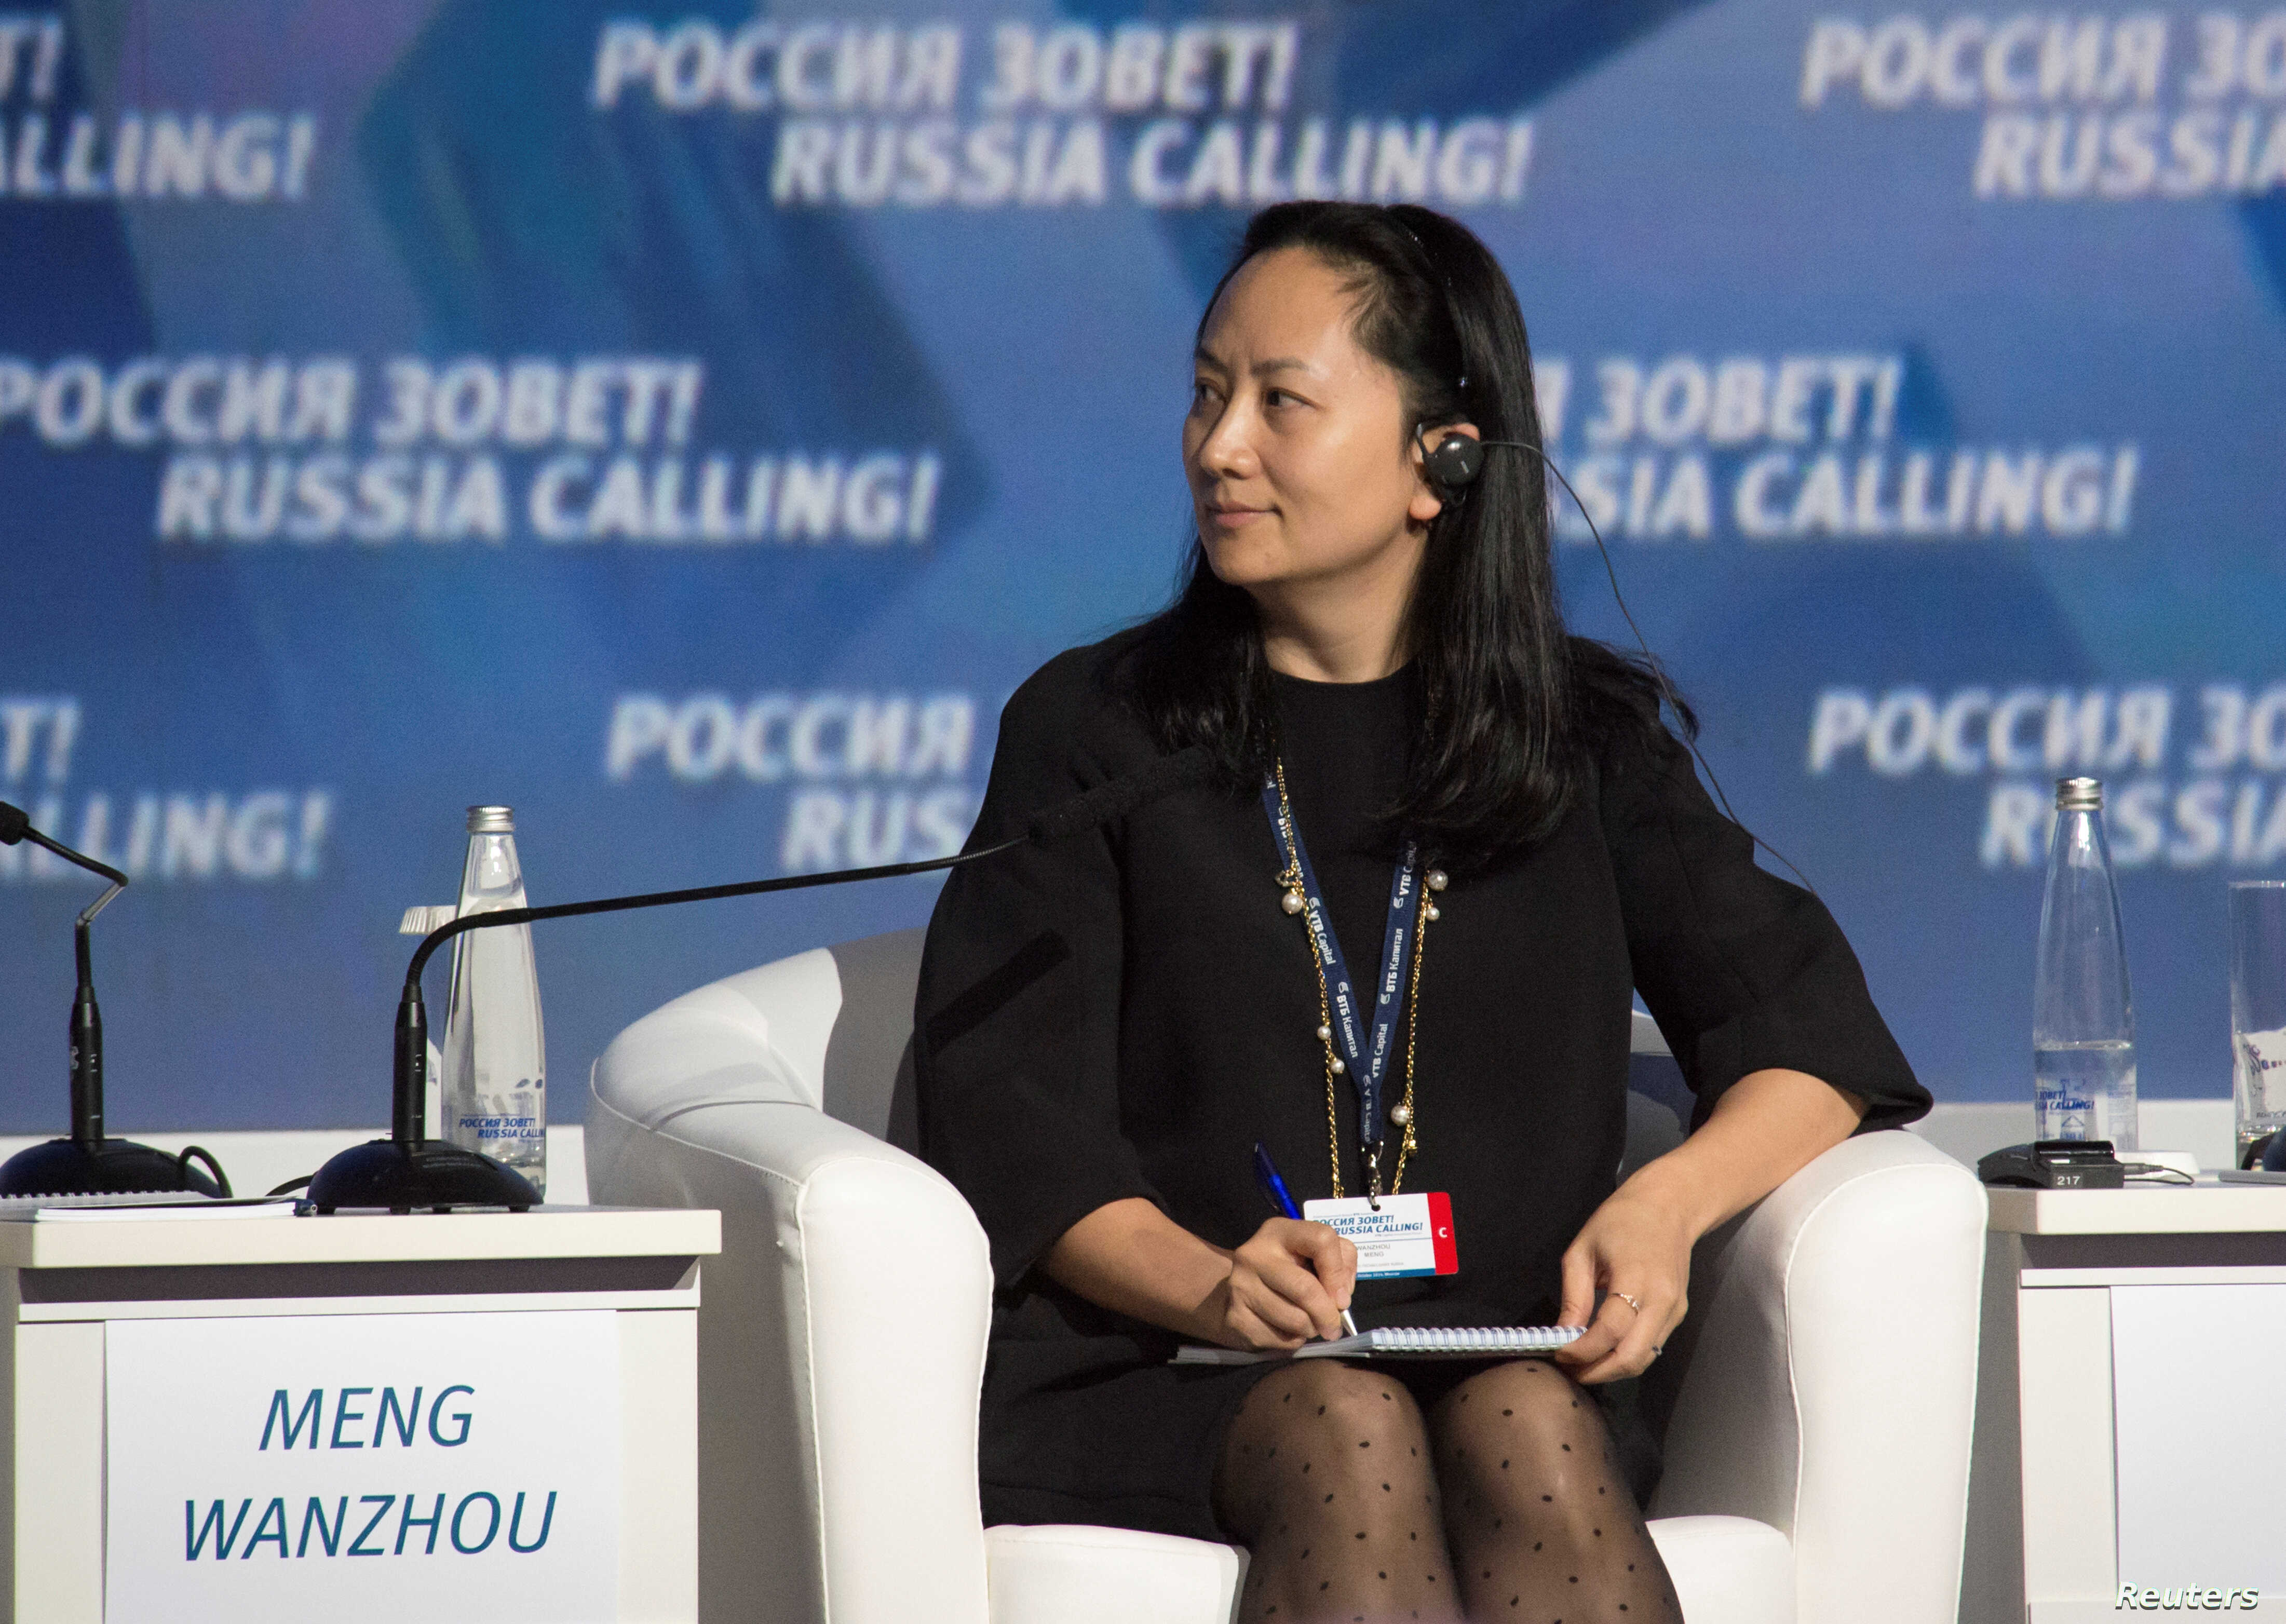 """FILE - Meng Wanzhou, executive board director of the Chinese technology giant Huawei, attends a session of the VTB Capital Investment Forum """"Russia Calling!"""" in Moscow, Russia Oct. 2, 2014."""